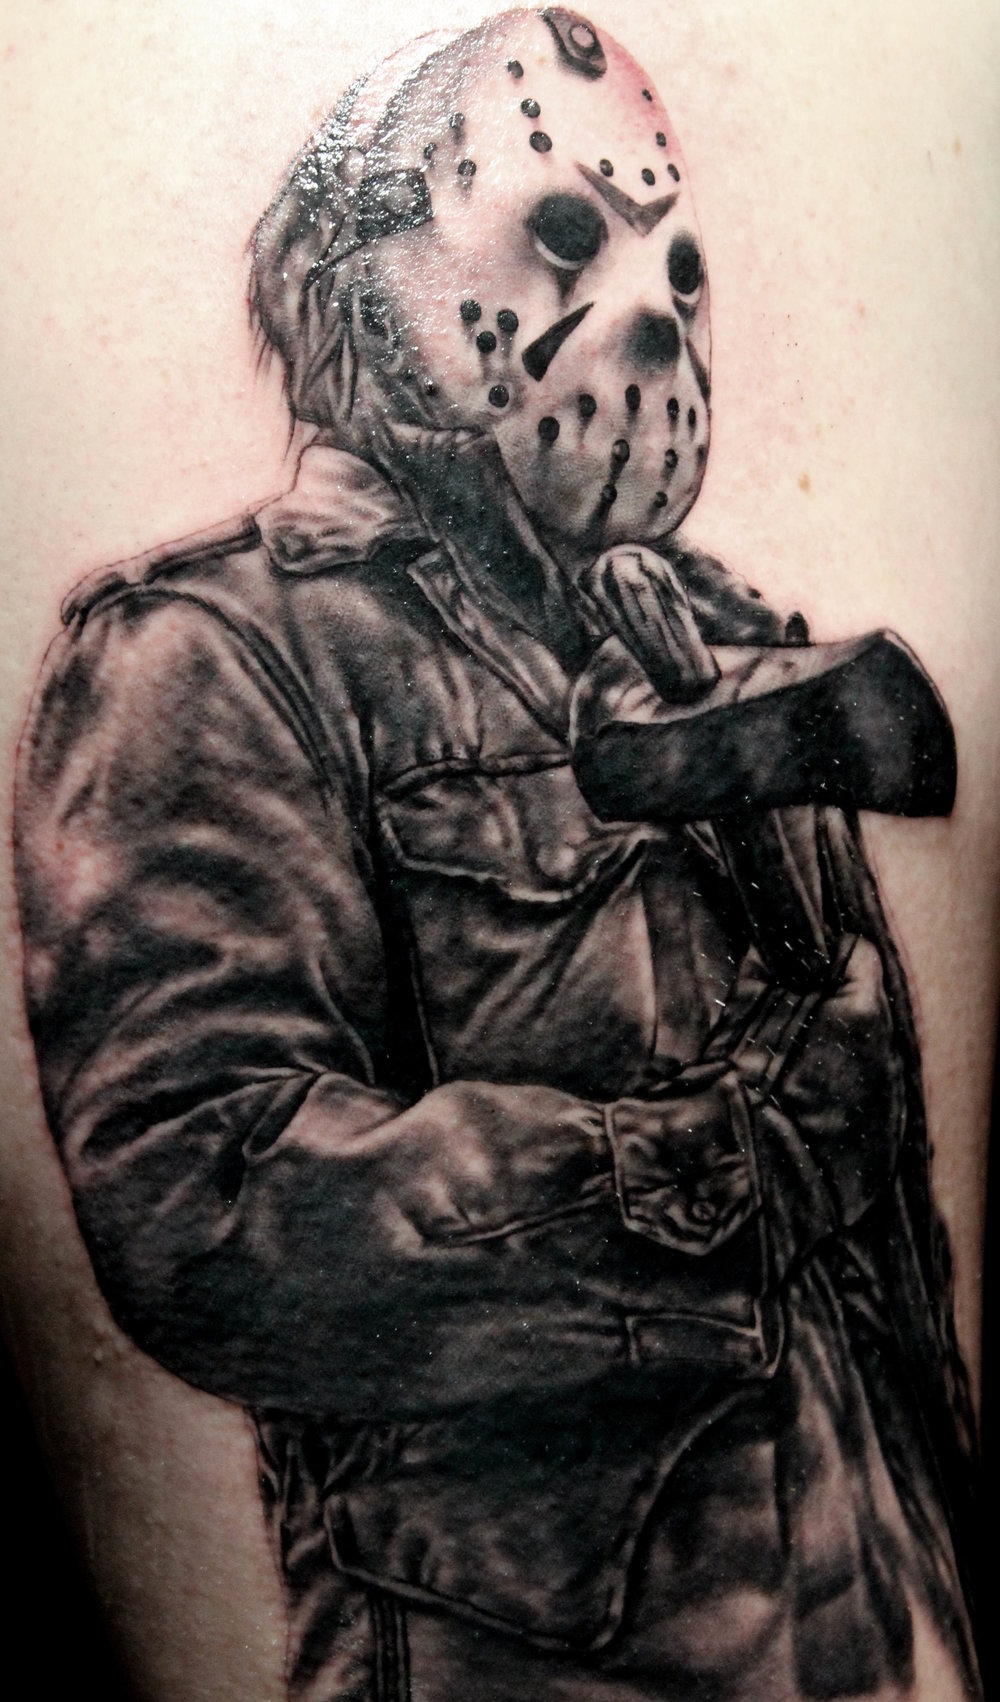 This Jason Voorhees Is The First Of A Slasher Movie Sleeve By Will He Also Started Michael Myers Portrait Next To But Didnt Get Far Enough Along